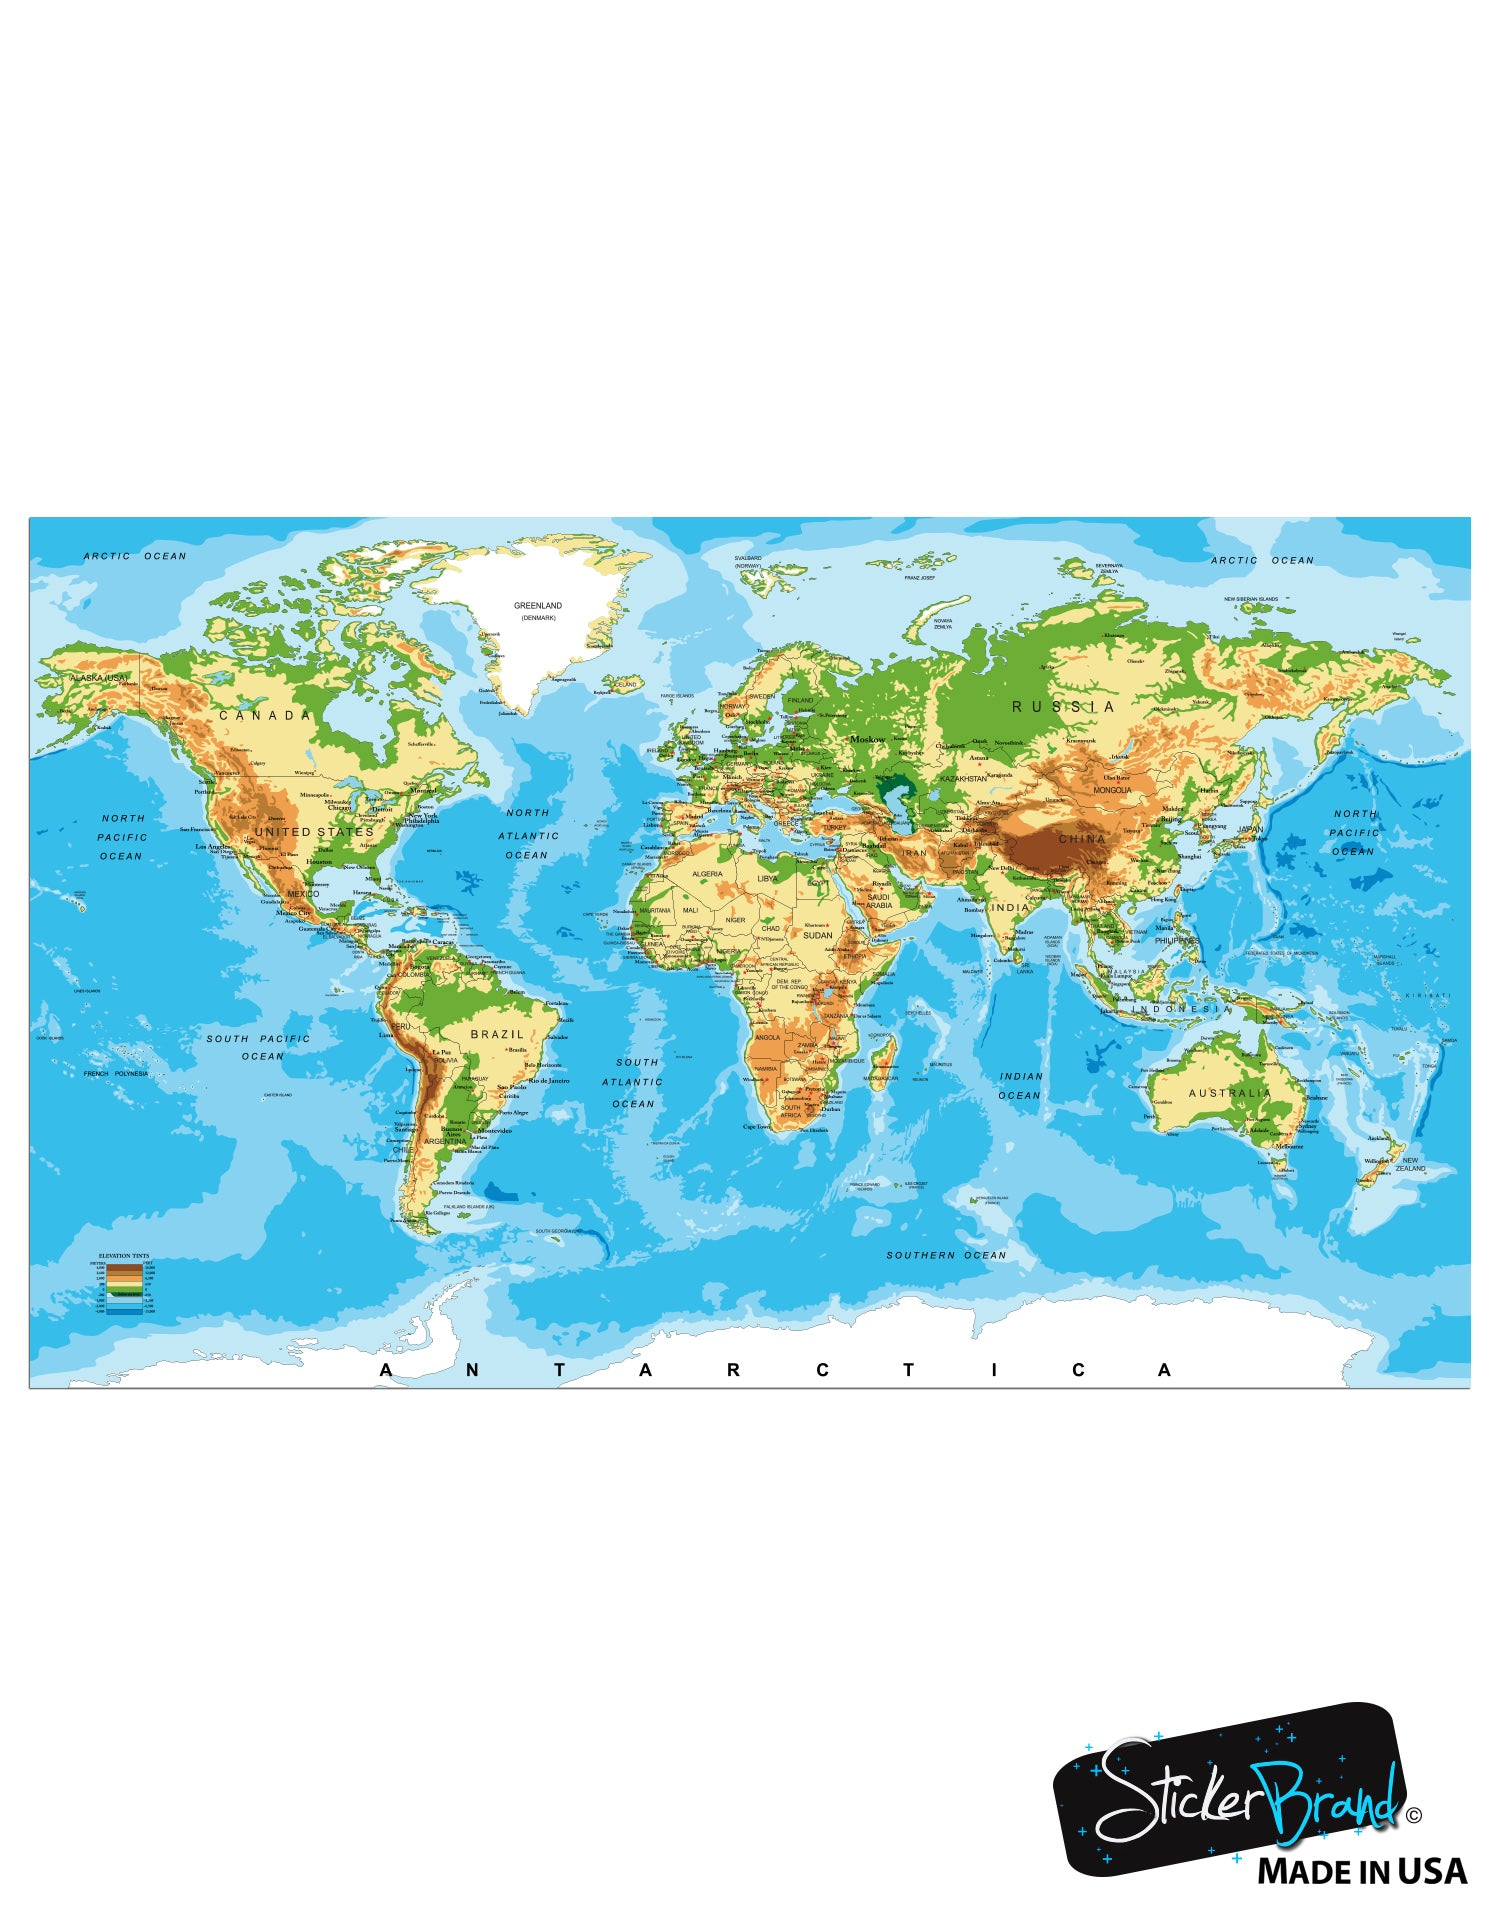 World map poster educational wall map guide with elevation chart p1 world map poster educational wall map guide with elevation chart p1002 gumiabroncs Gallery